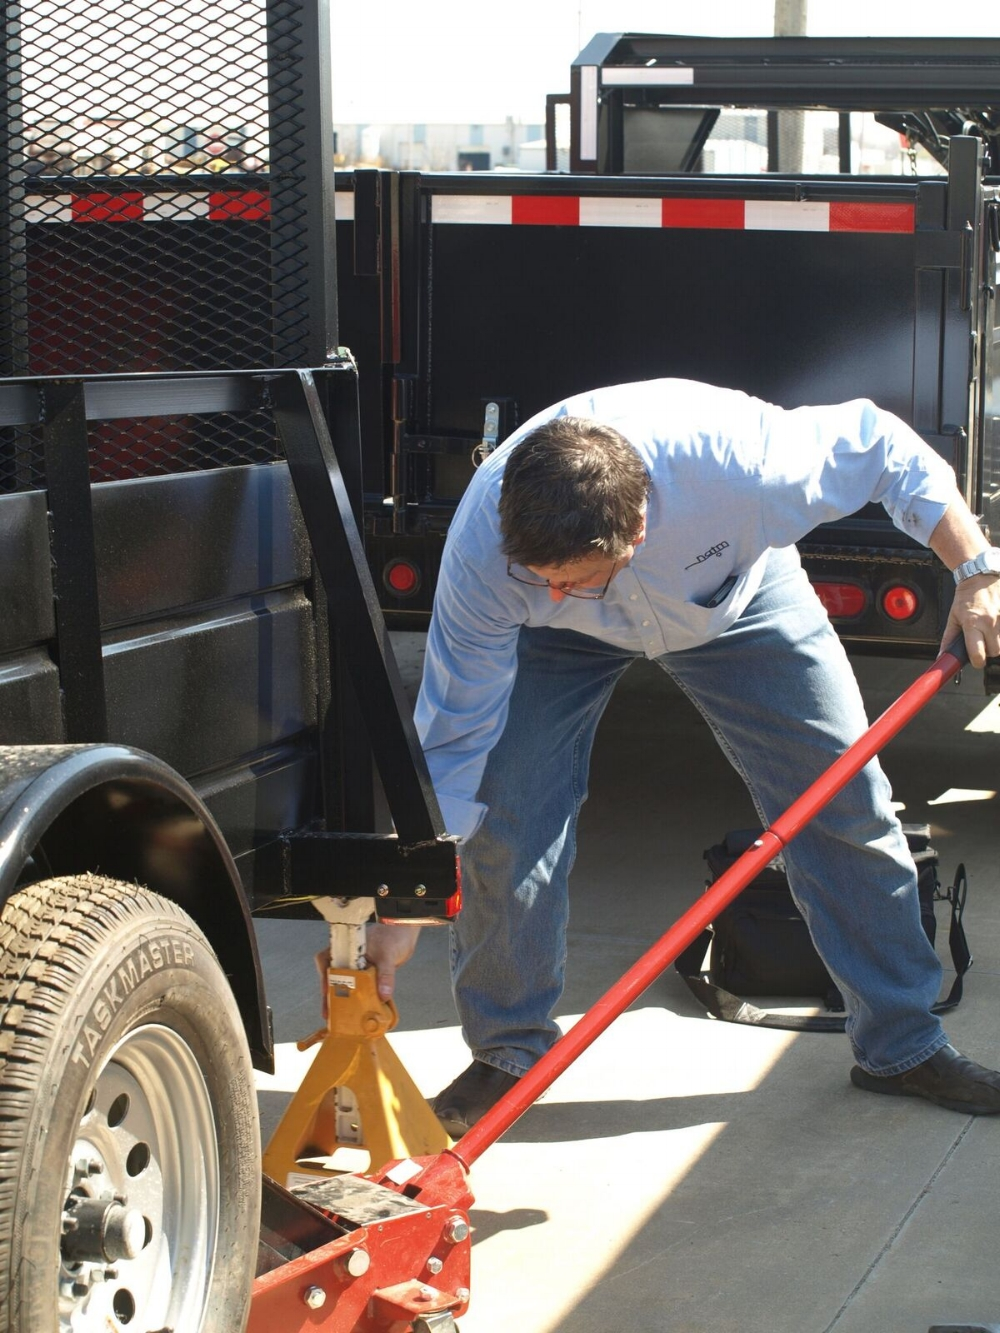 Photo Credit: Lancaster, C., & Klein, R. (2009).  The Trailer Handbook: A Guide to Understanding Towing & Trailer Safety . Topeka, KS: National Association of Trailer Manufacturers.